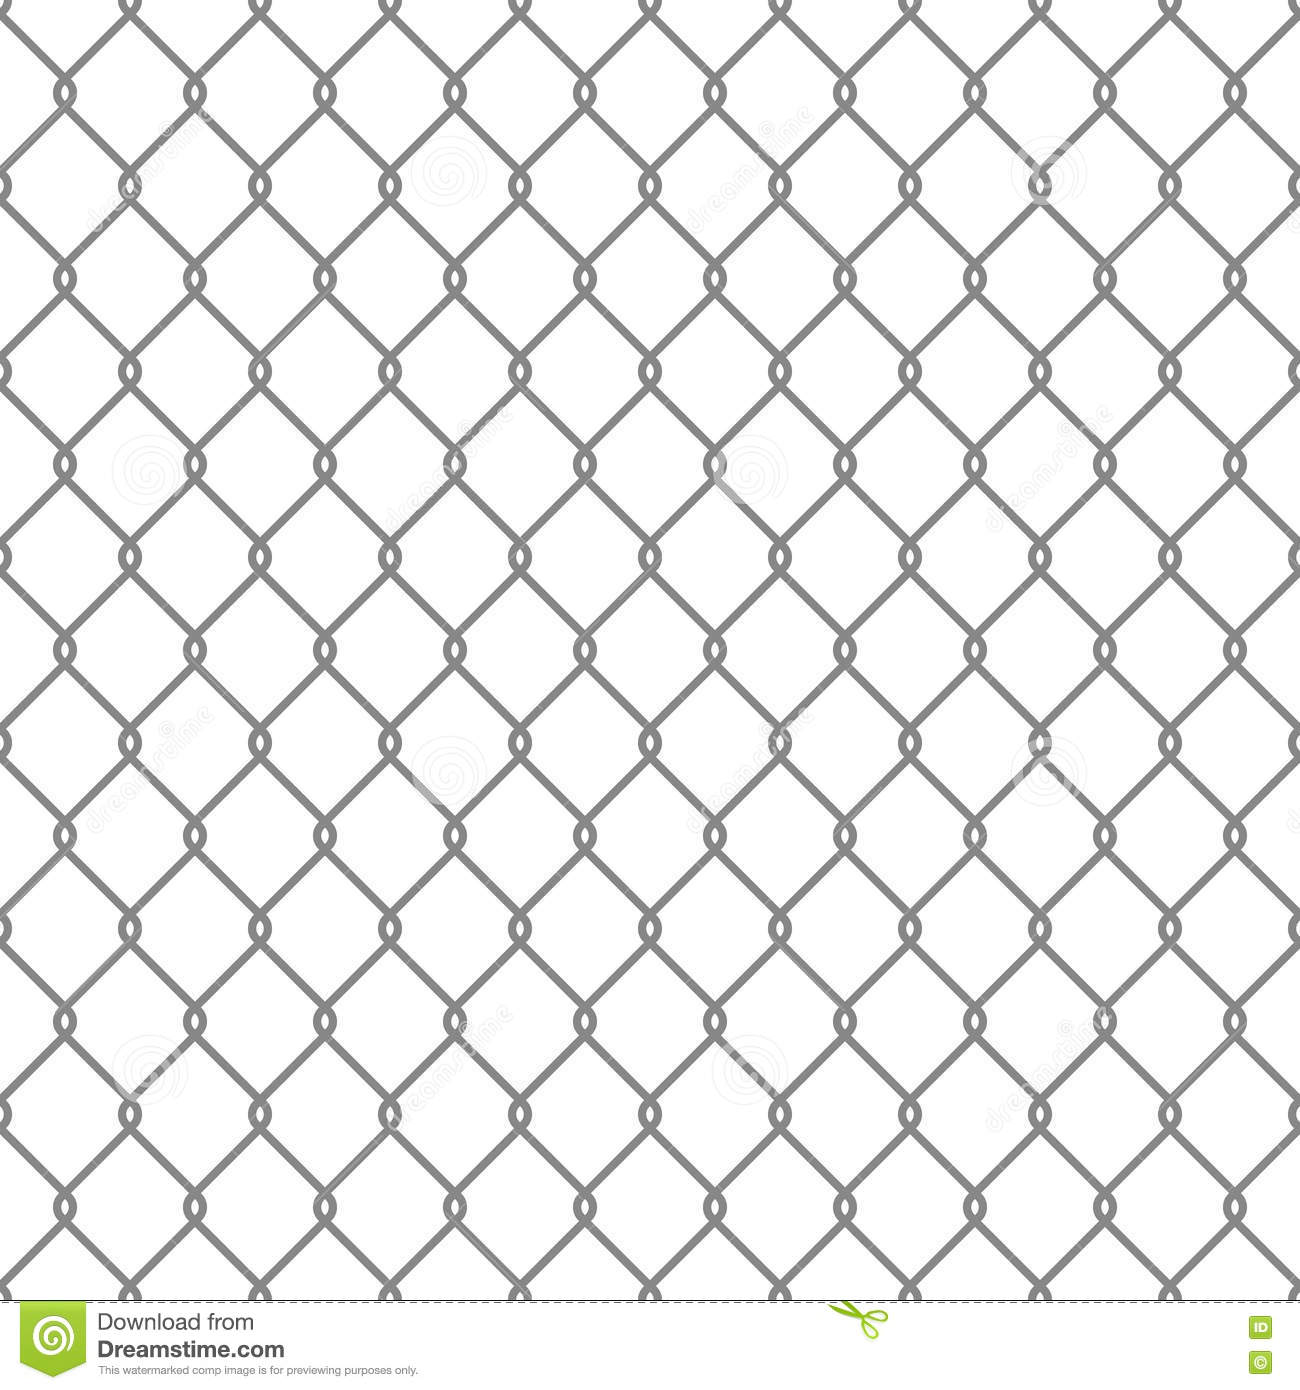 Steel Wire Mesh Seamless Background. Vector Illustration 42808645 ...